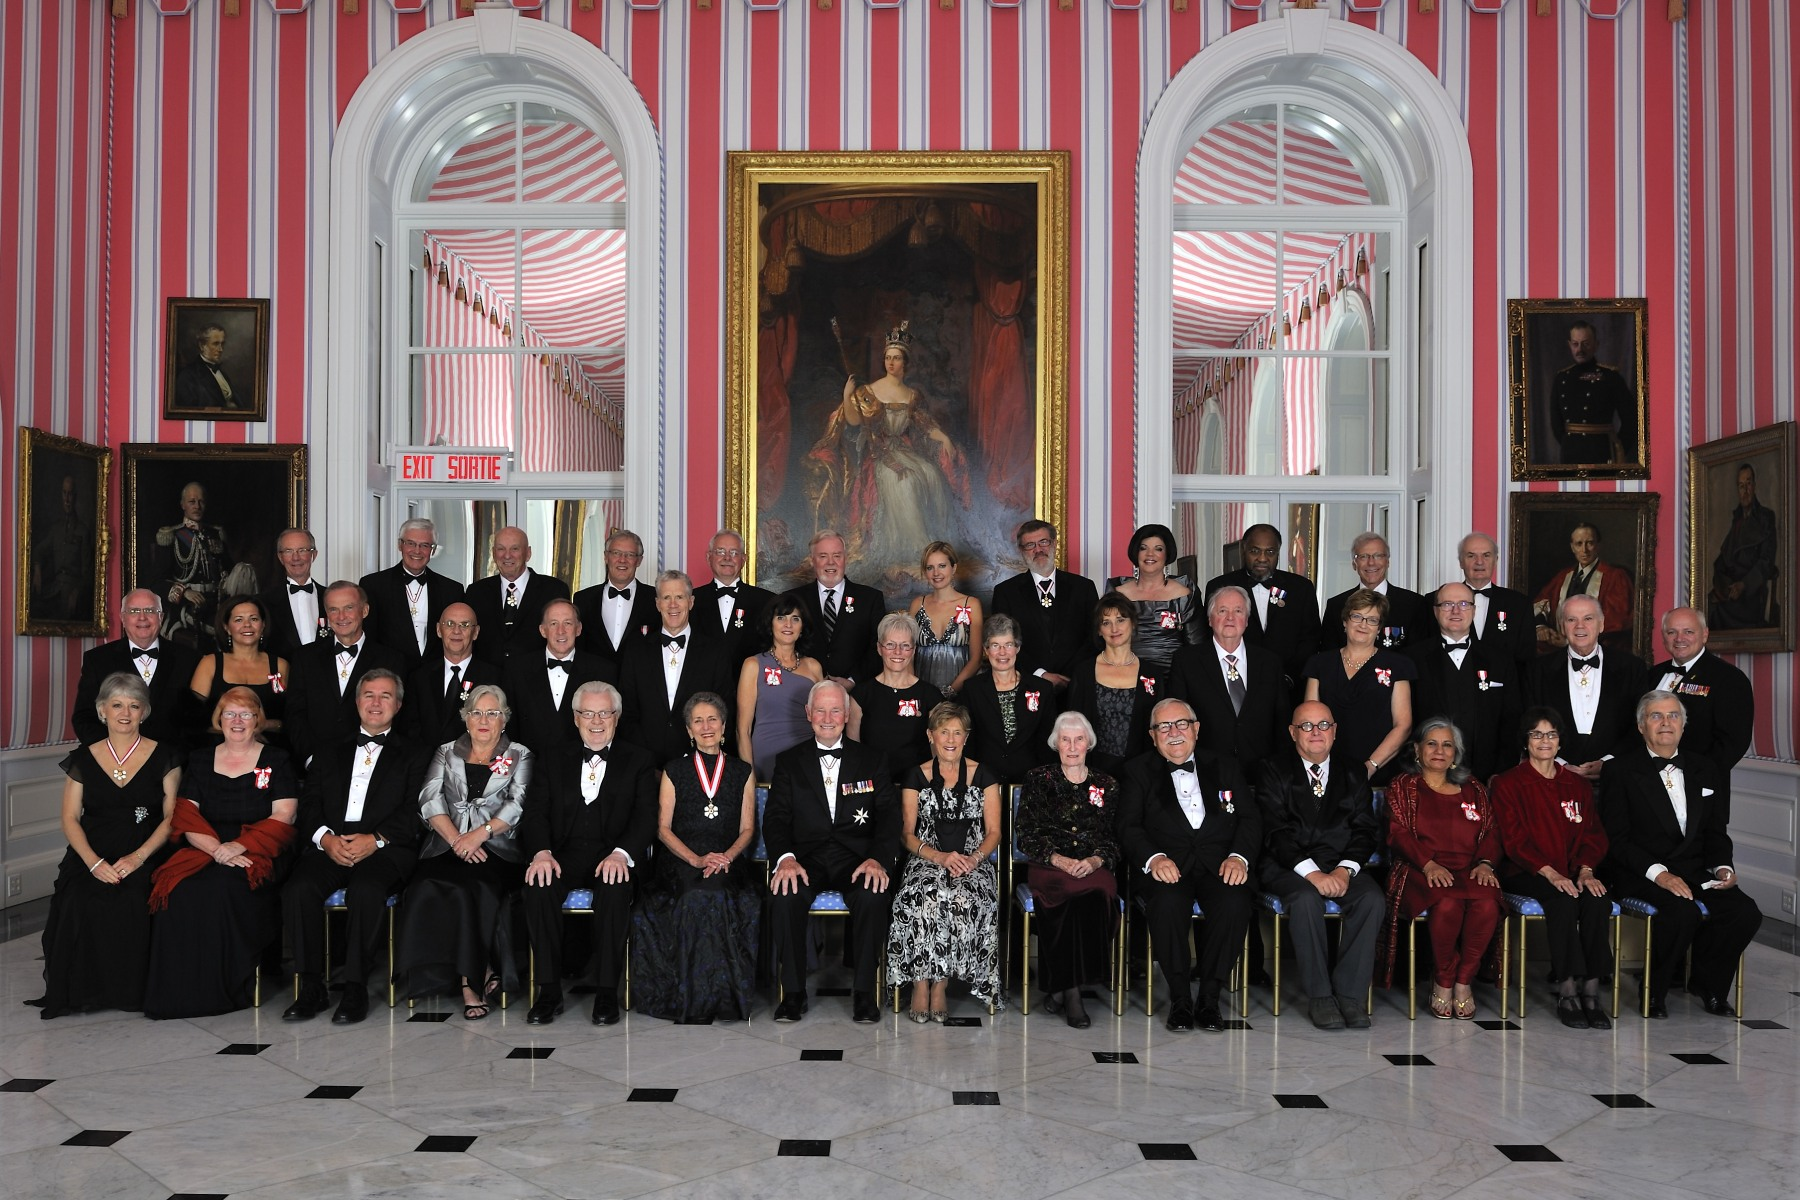 Their Excellencies are pictured with the 43 recipients that were invested into the Order of Canada on September 28, 2012.